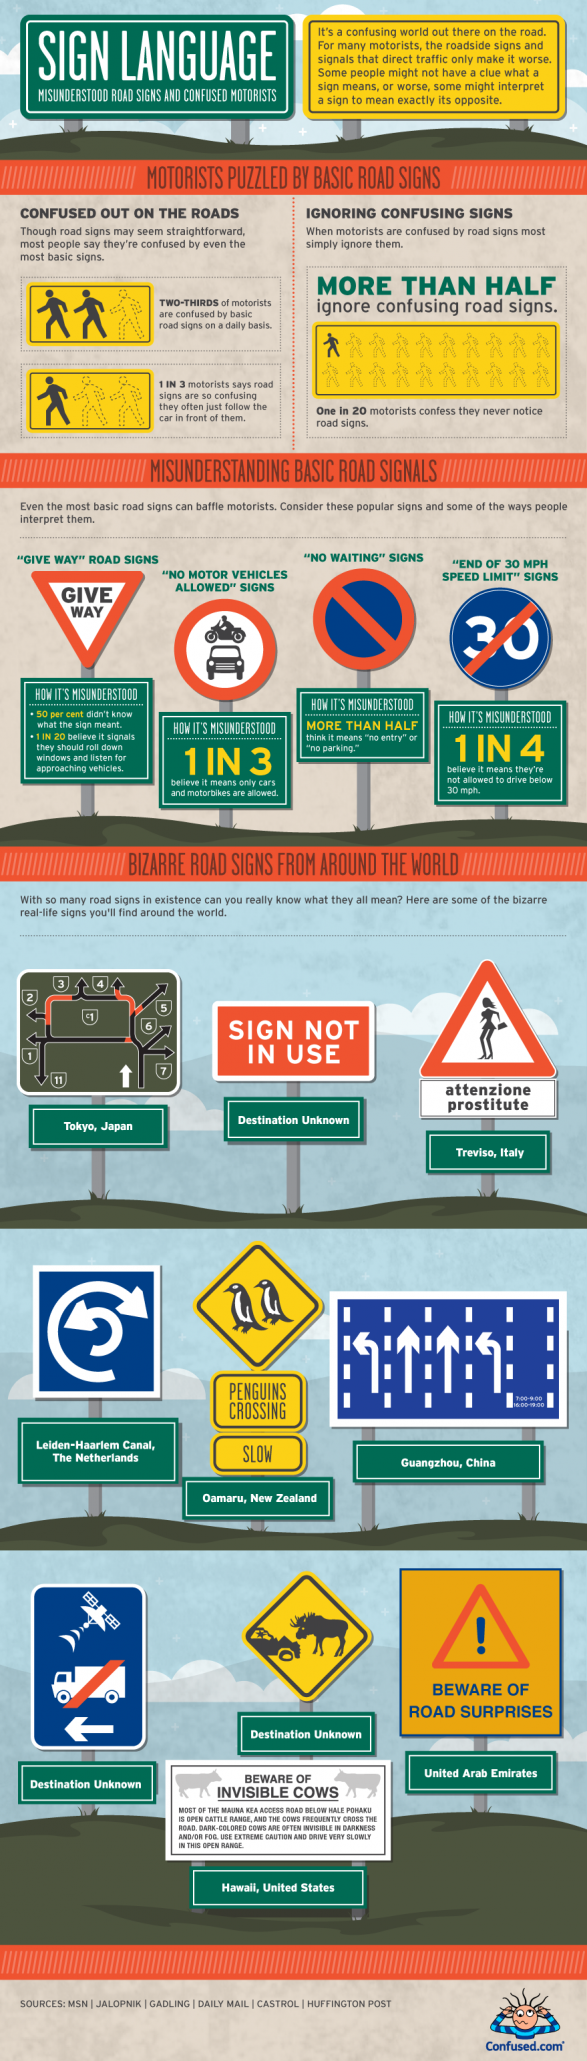 Misunderstood Road Signs and Confused Motorists